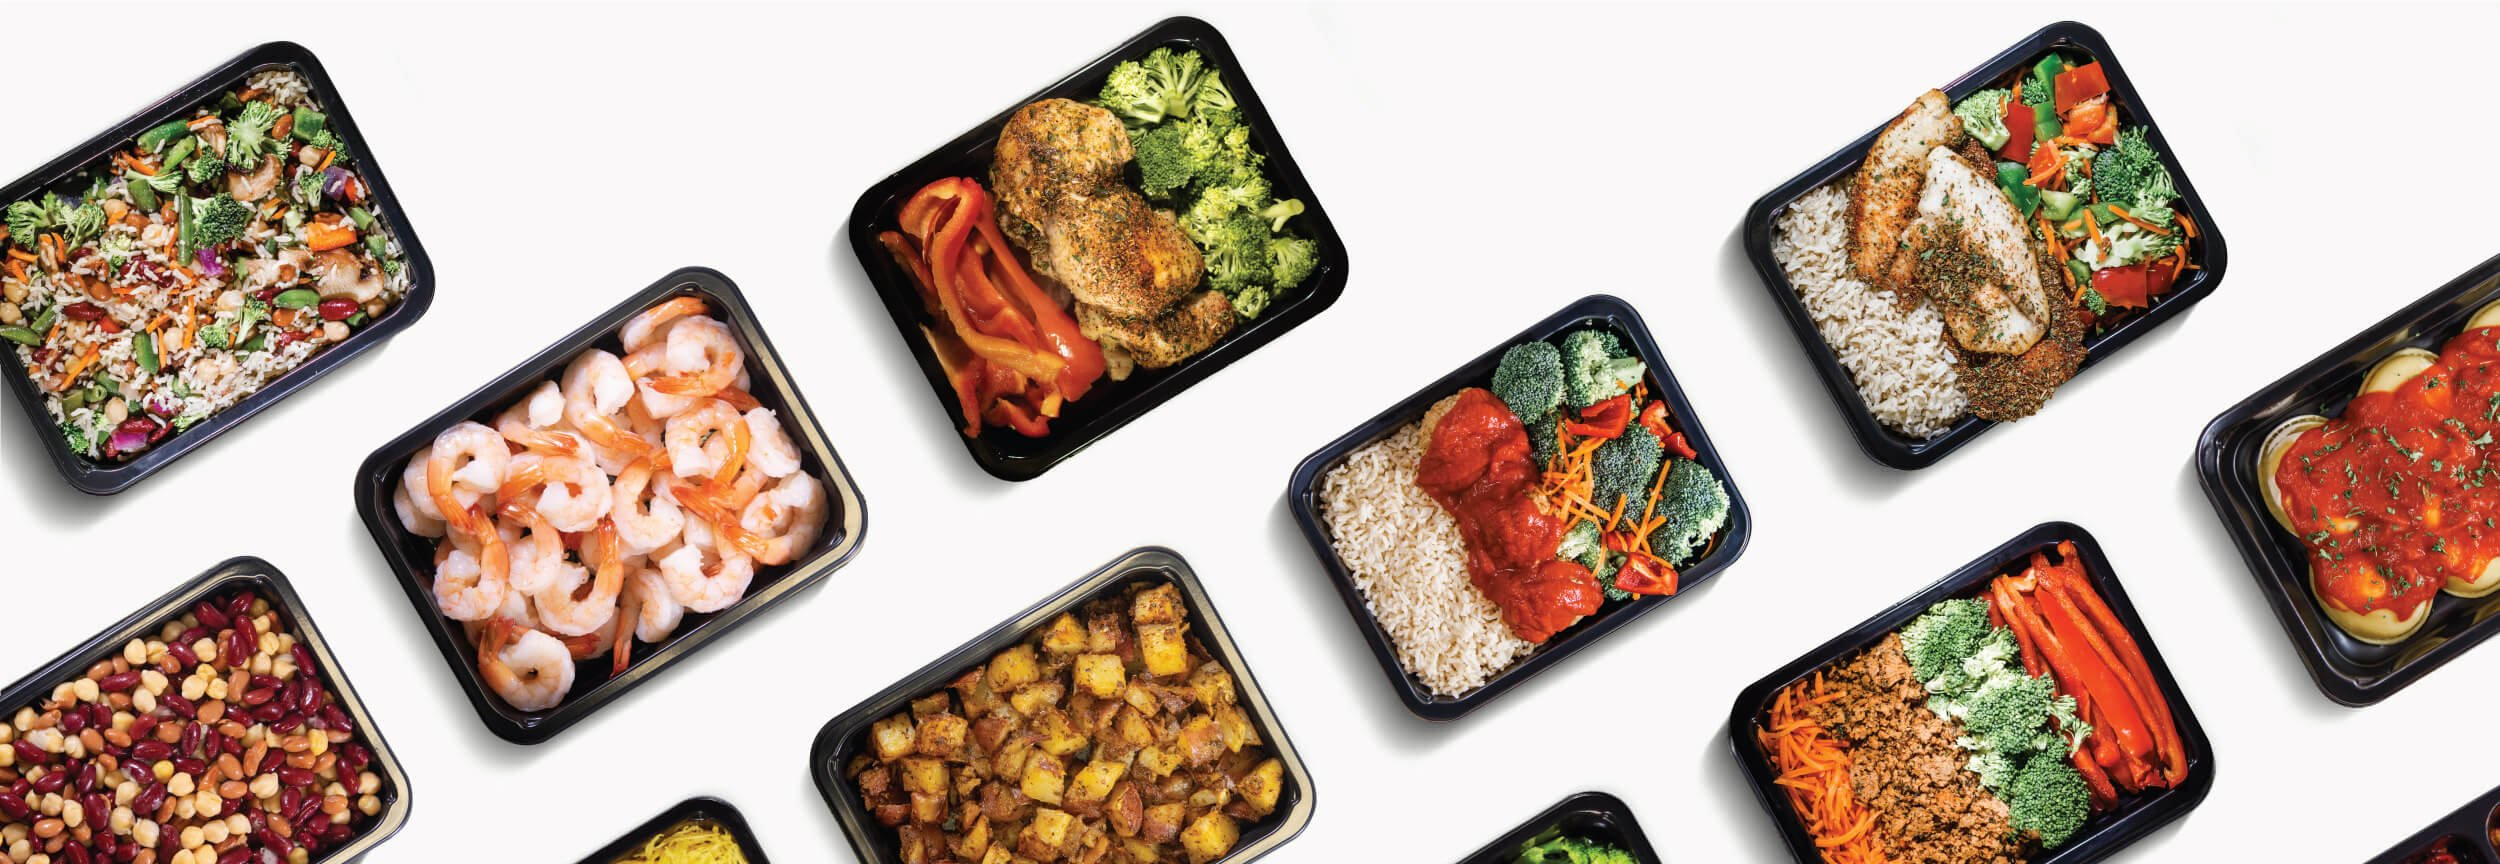 Bodybuilding meal prep delivery service